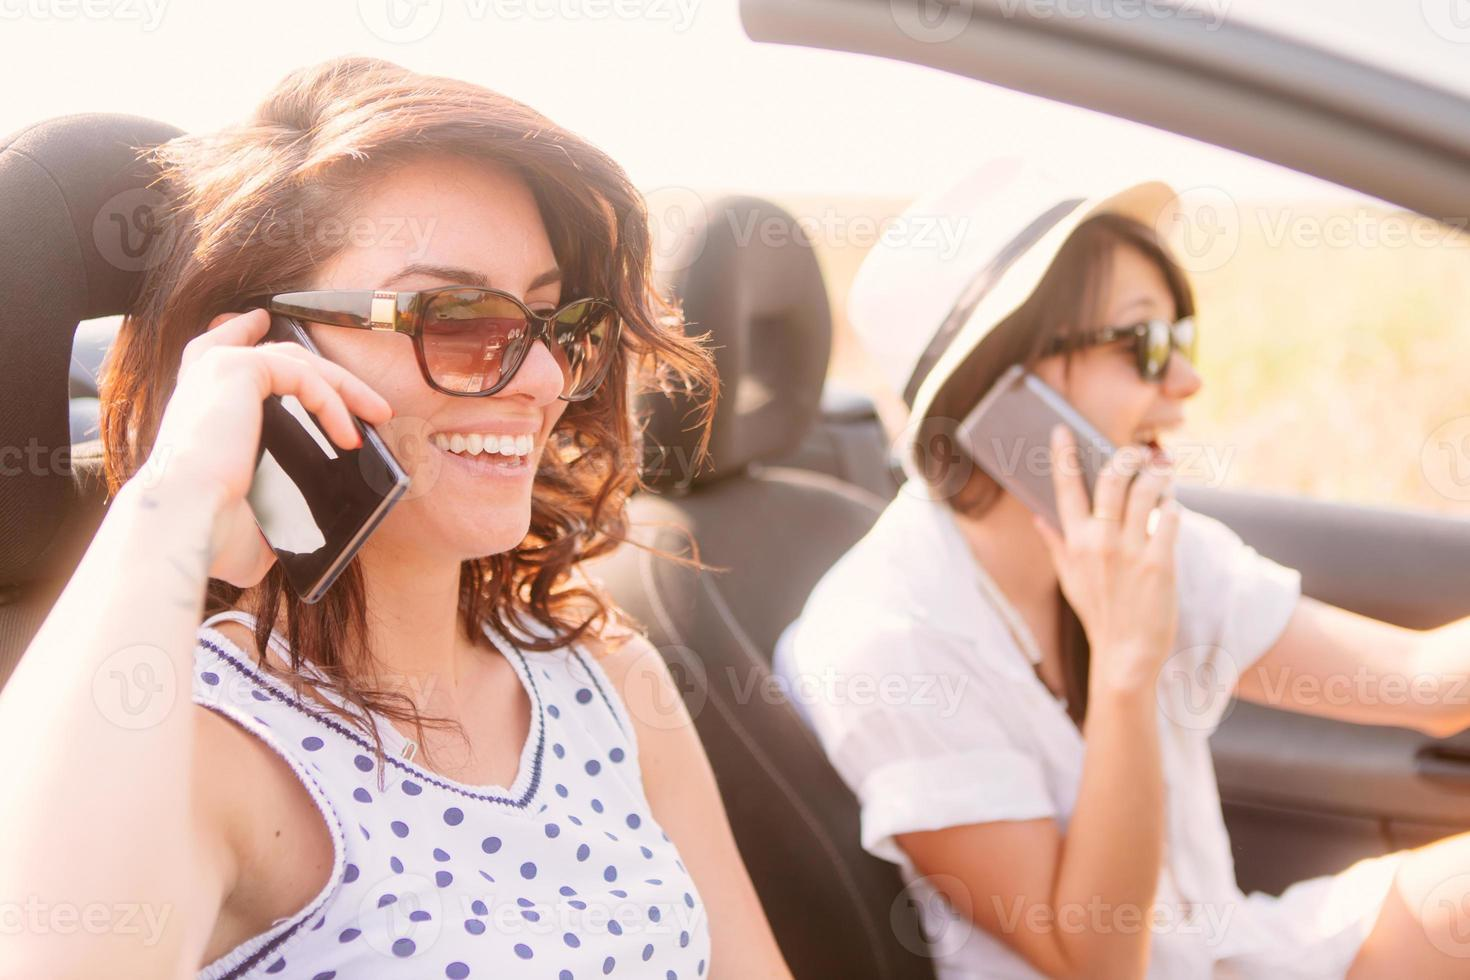 On the phone while driving photo